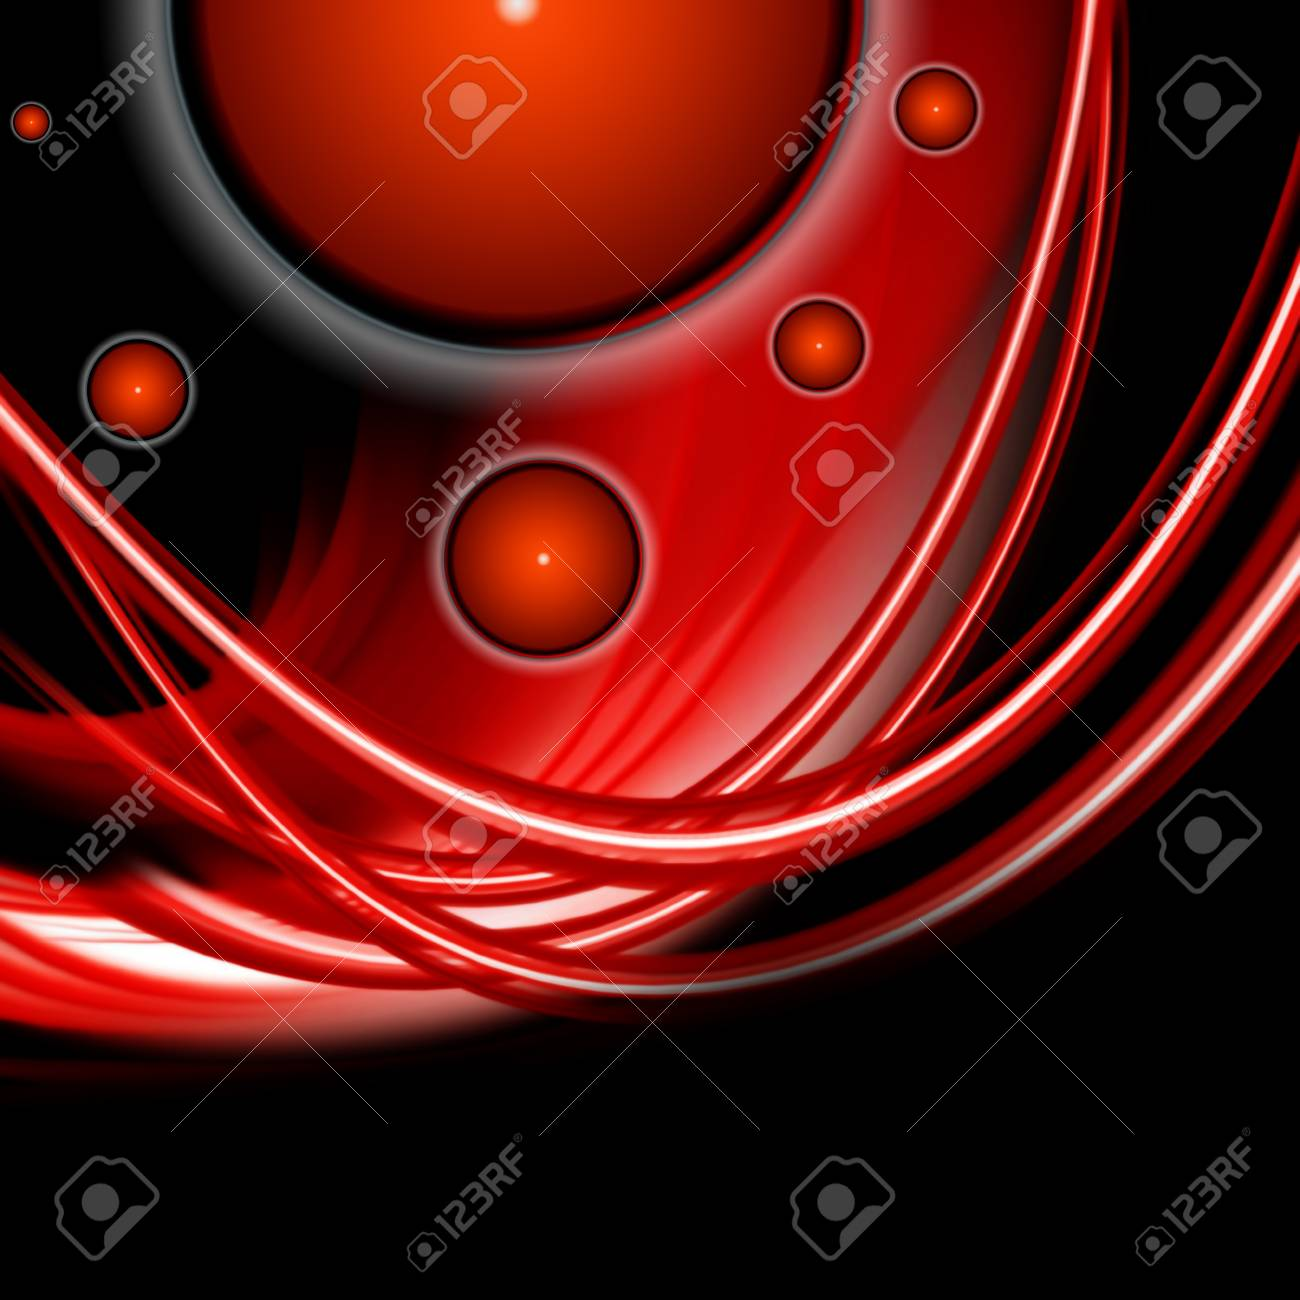 Abstract elegant background design with space for your text Stock Photo - 15024493